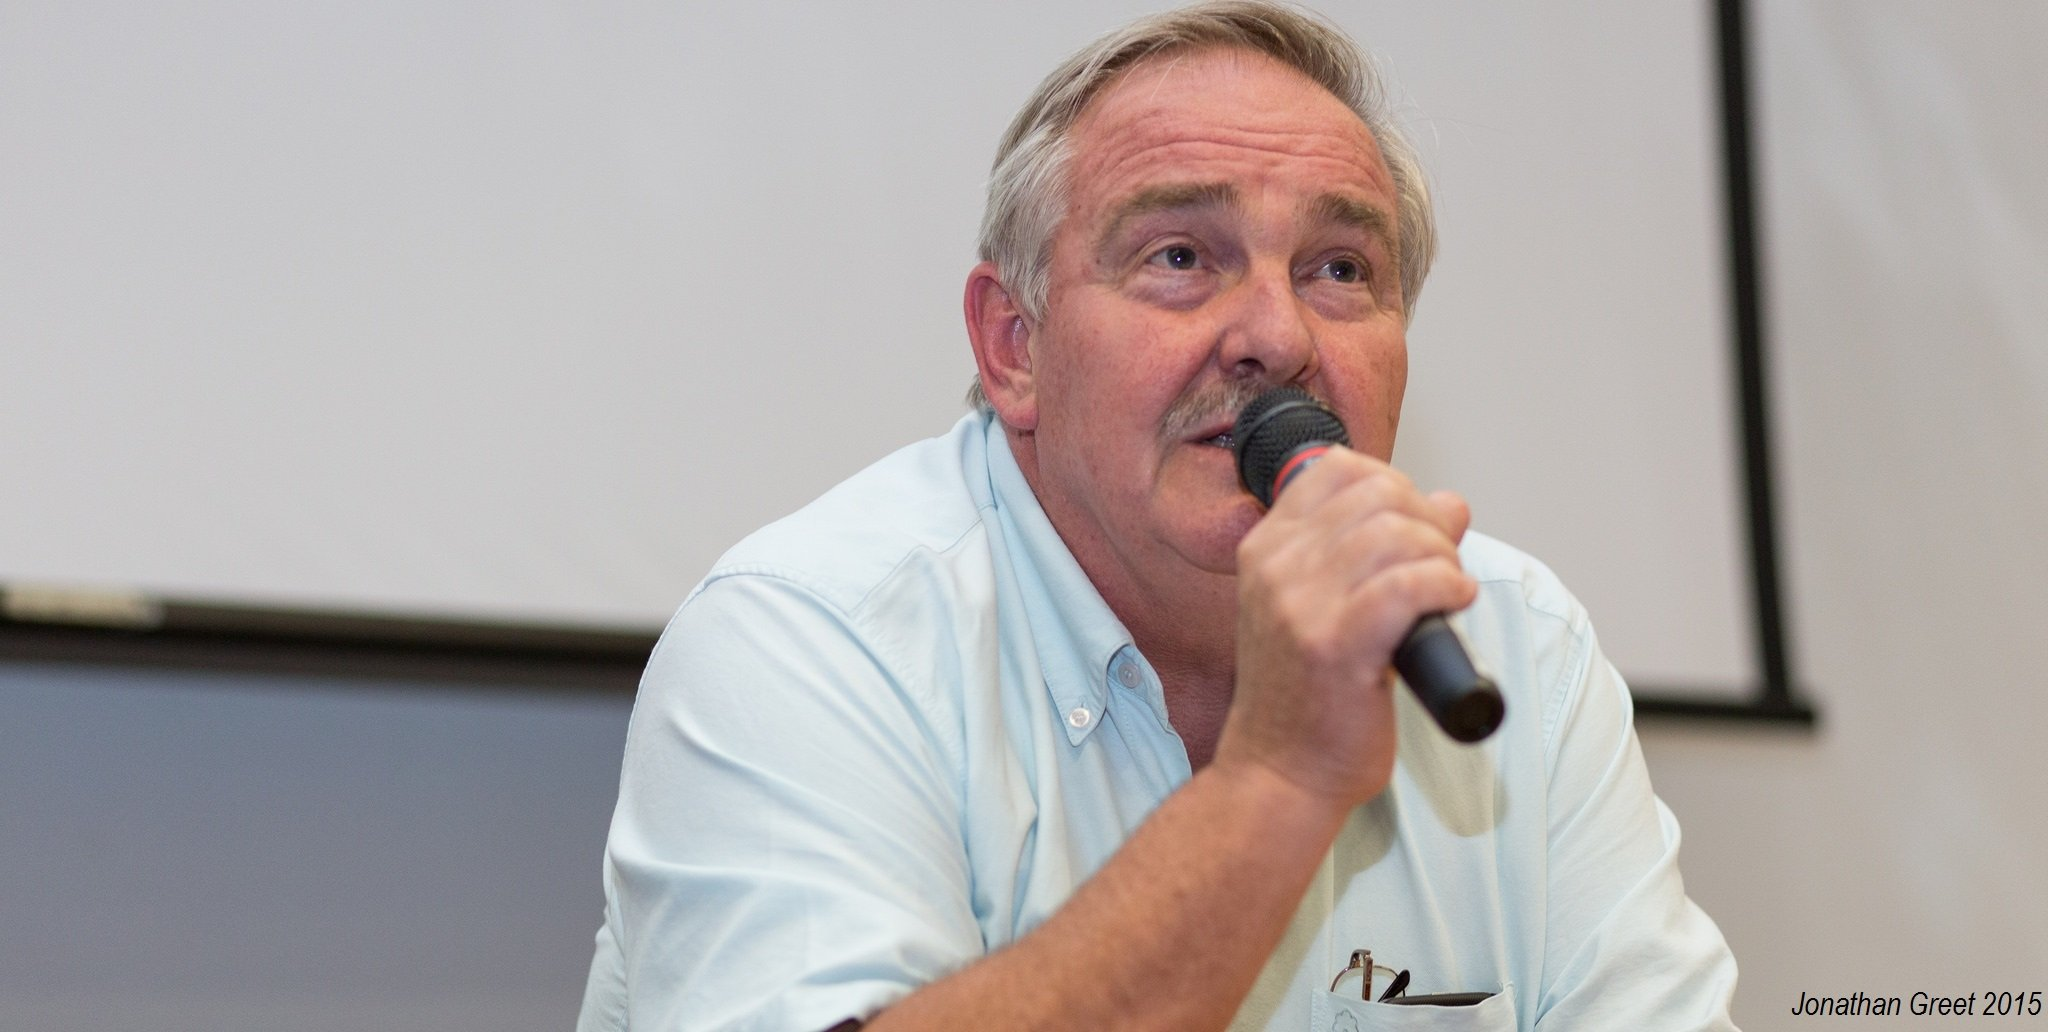 Professor David Nutt at Breaking Convention. He is also the author of the book: Drugs Without the Hot Air, and founder of DrugScience: the only completely independent science-led drugs charity. Photo Credit: Jonathan Greet 2015.